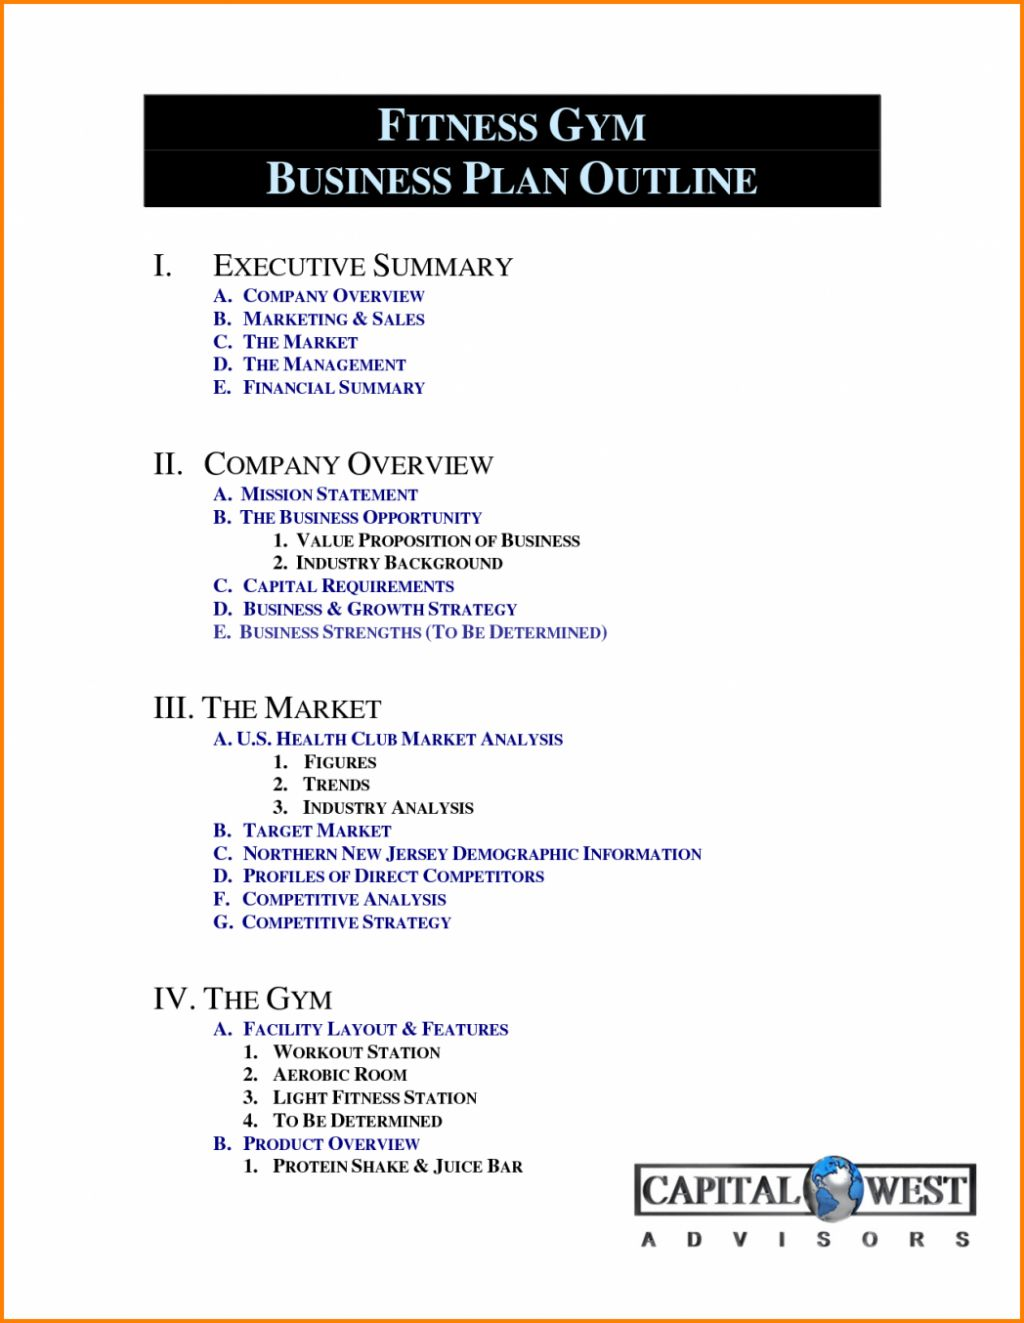 004 Free Business Plan Template Word South Africa Gym Pdf